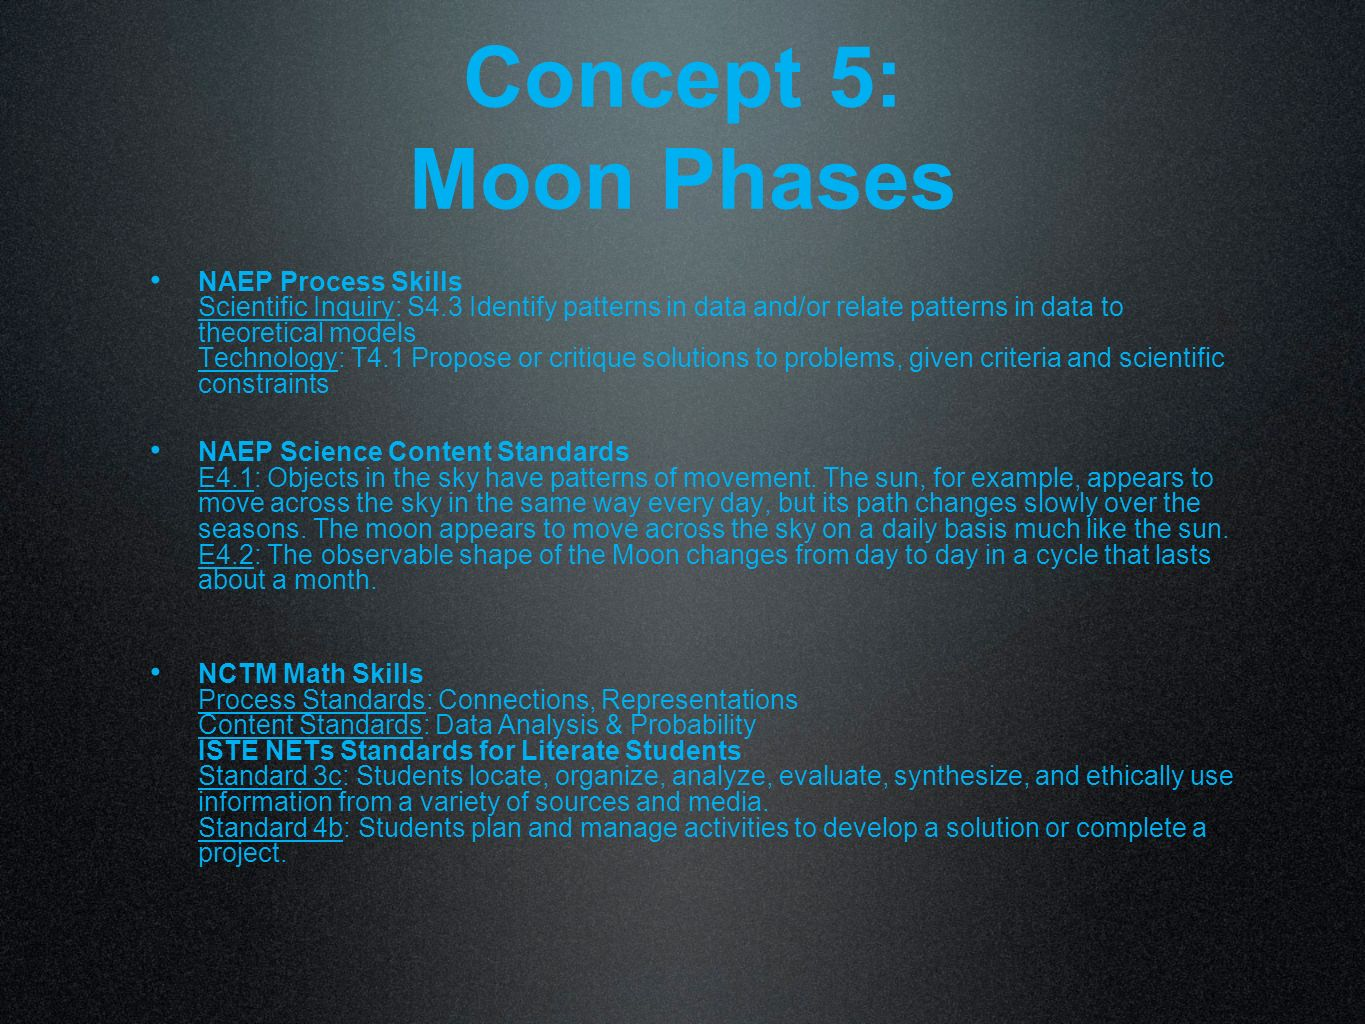 Concept 5: Moon Phases